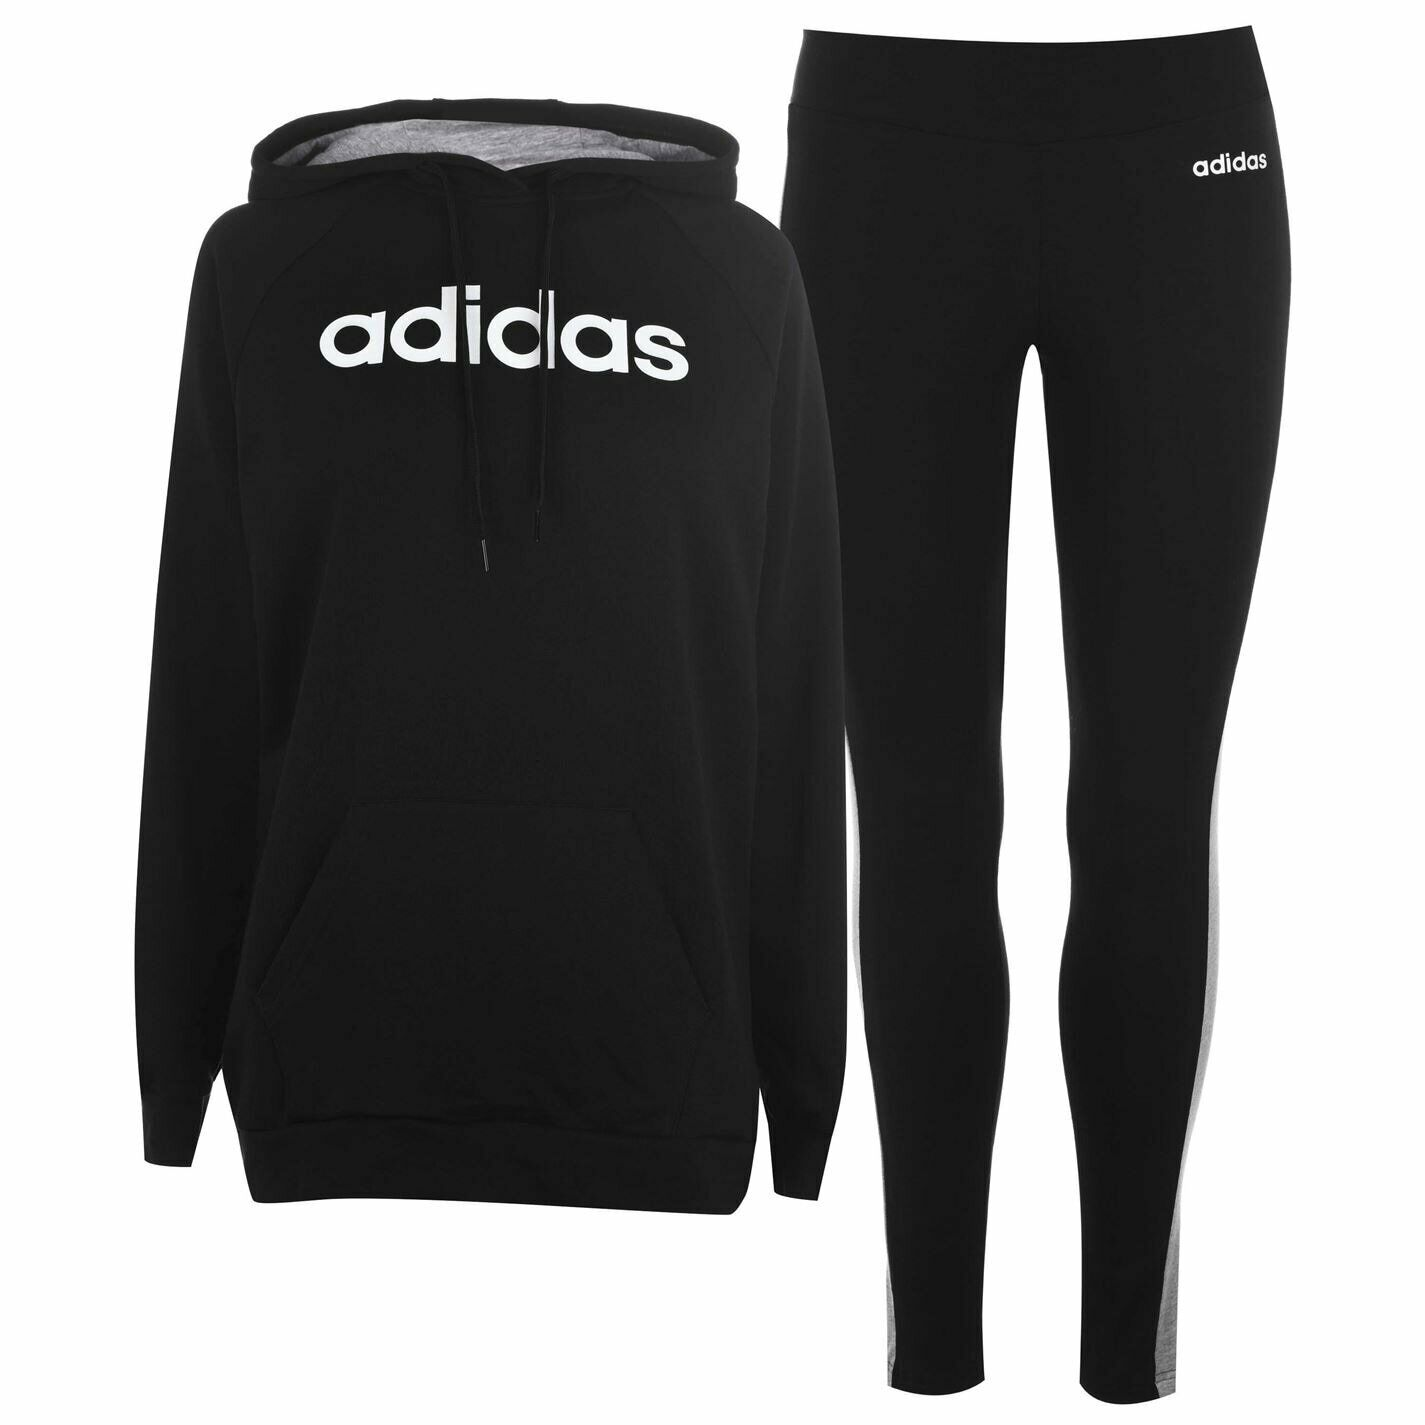 adidas femme vetements ensemble